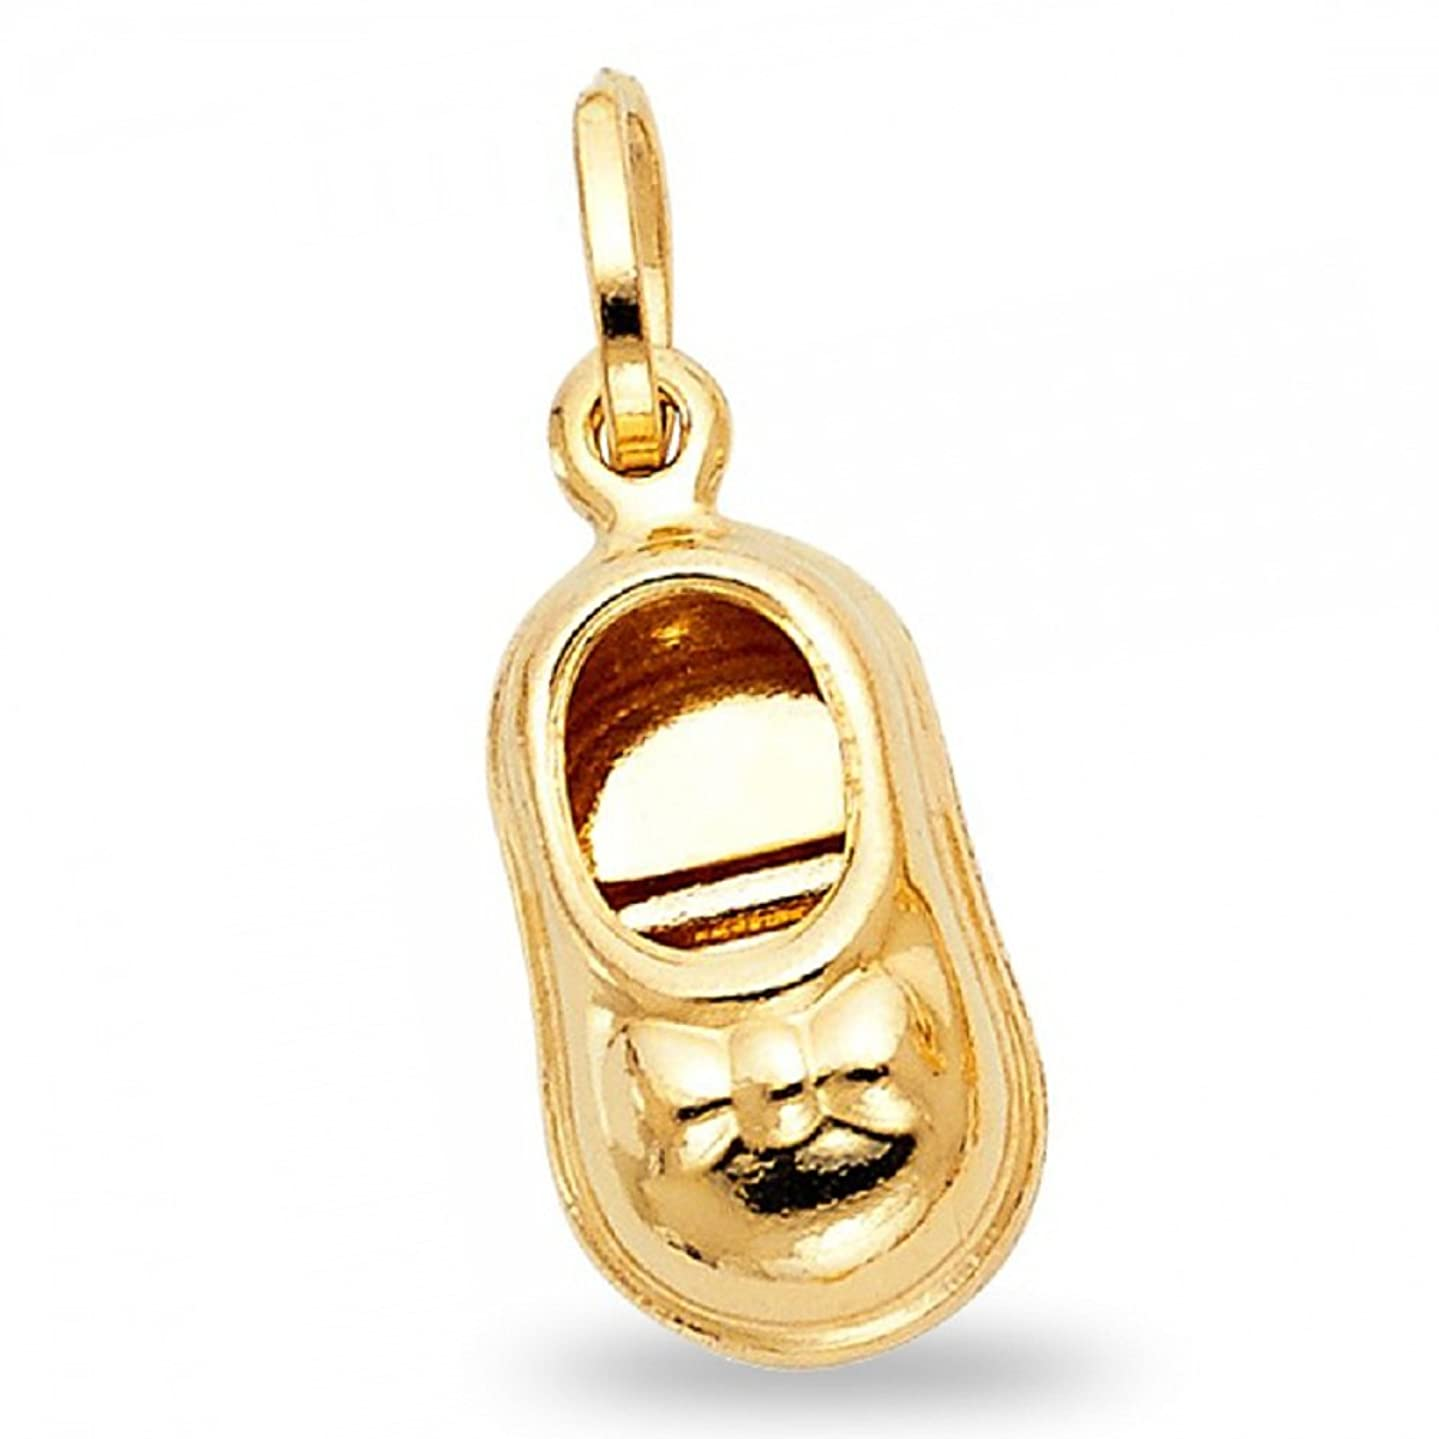 Baby Shoe Pendant Solid 14k Yellow Gold Charm Polished Shiny Finish Quality Design Cute 17 x 10 mm